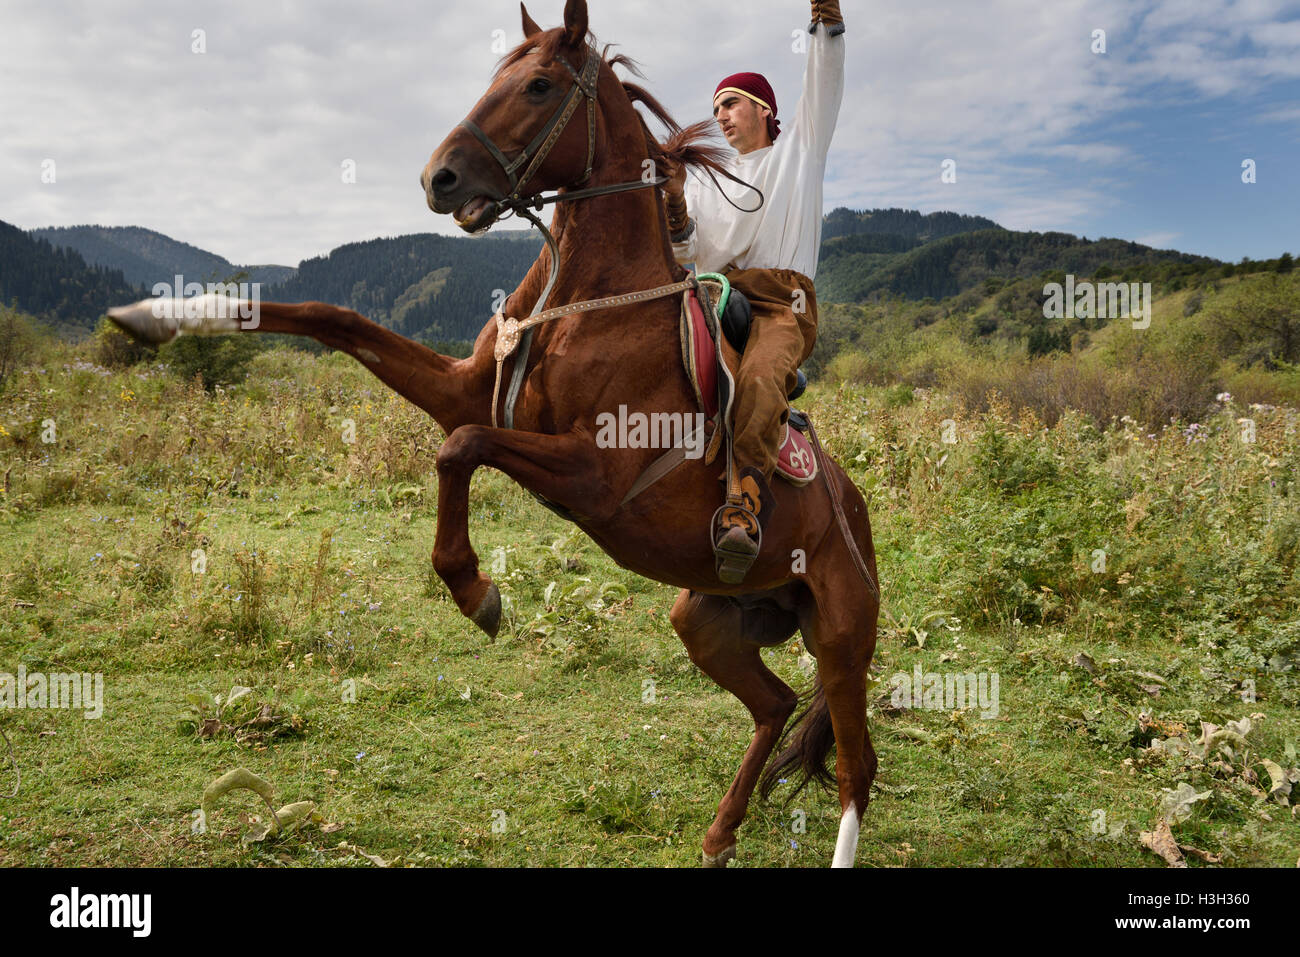 Kazakh horse rider raising arm on rearing gelding in Huns village Kazakhstan - Stock Image